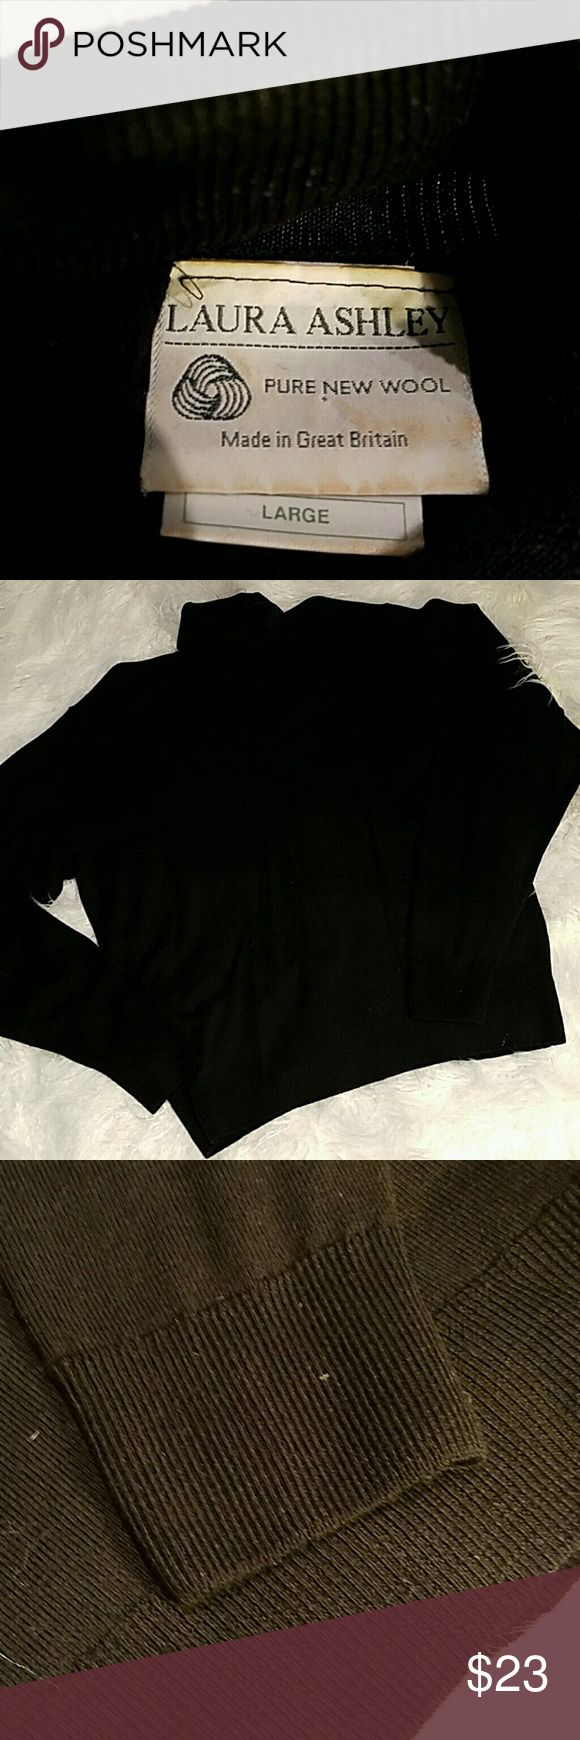 Laura Ashley Wool turtleneck size Large  Pure new wool made in Great Britain  ribbed turtleneck ribbed at bottom and at arms Laura Ashley Sweaters Cowl & Turtlenecks